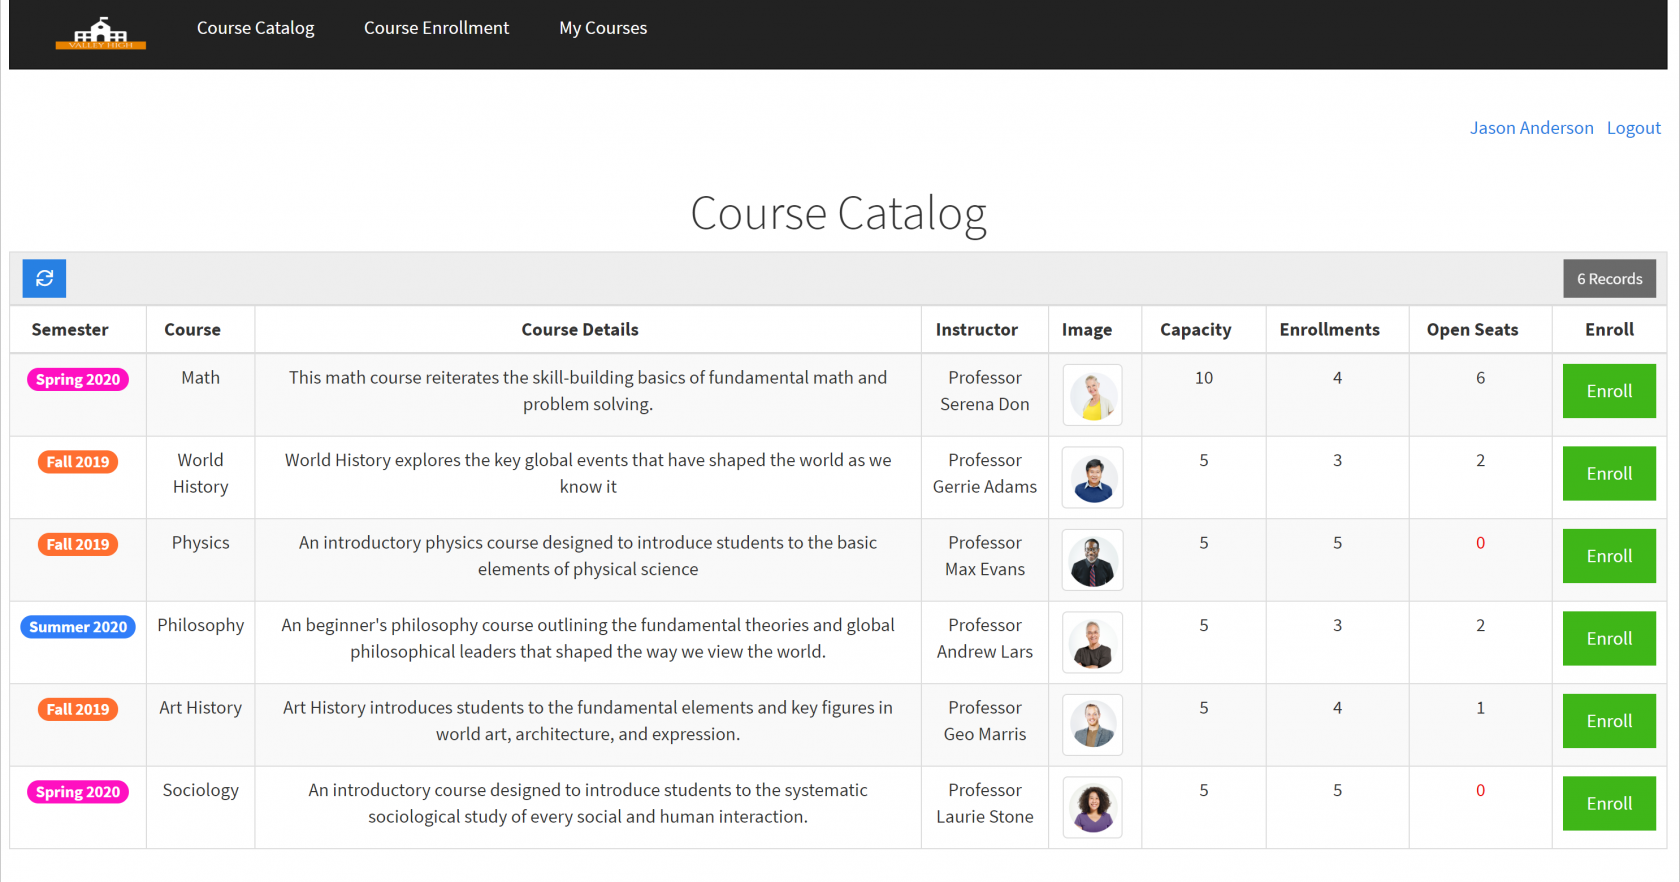 course-catalog-enroll.png